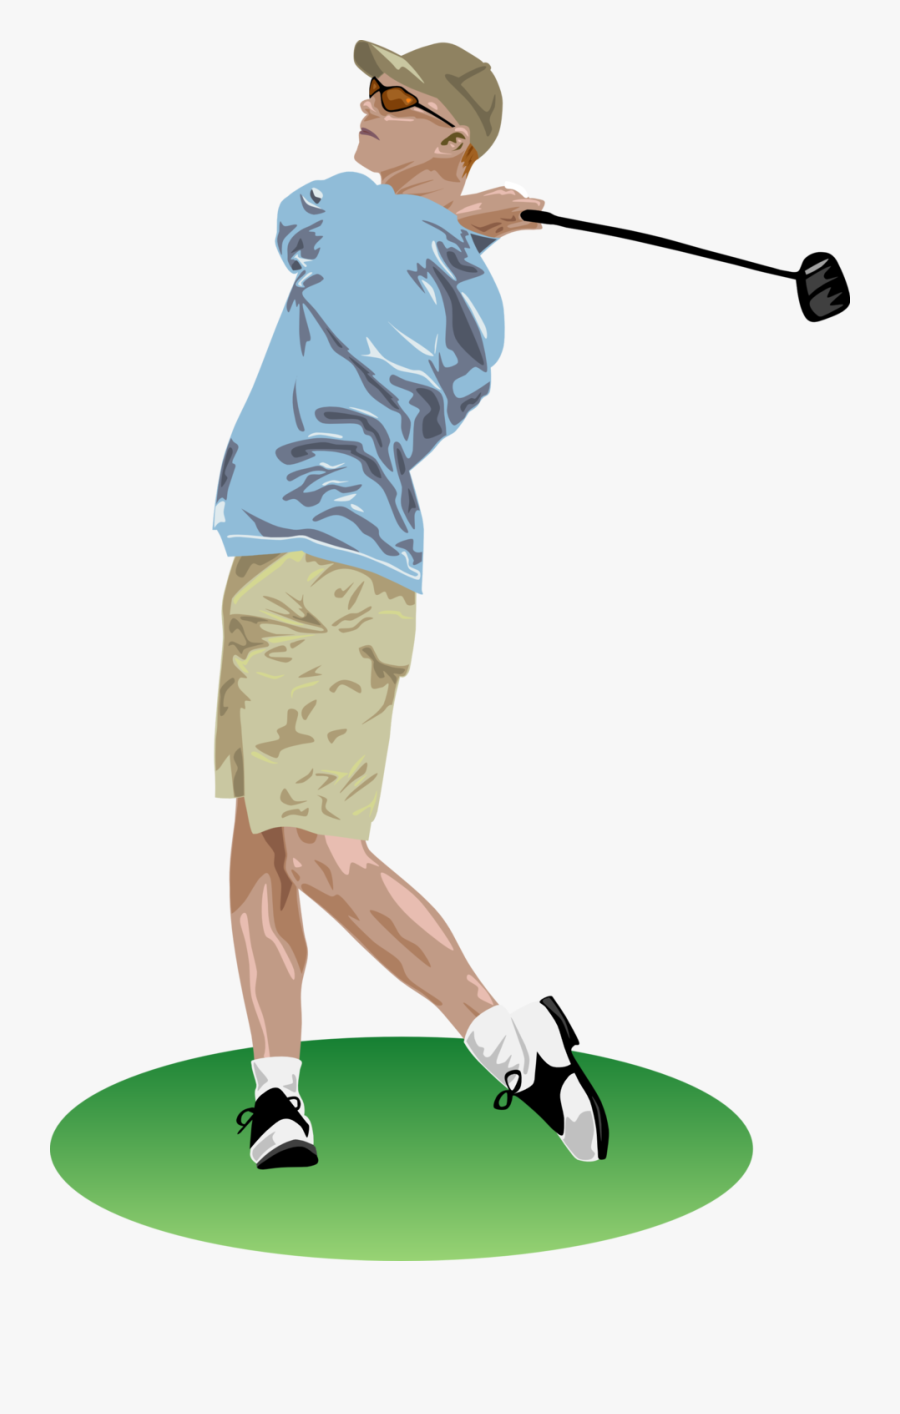 Golf,golf Equipment,ball Game - Chiropractic And Golf, Transparent Clipart